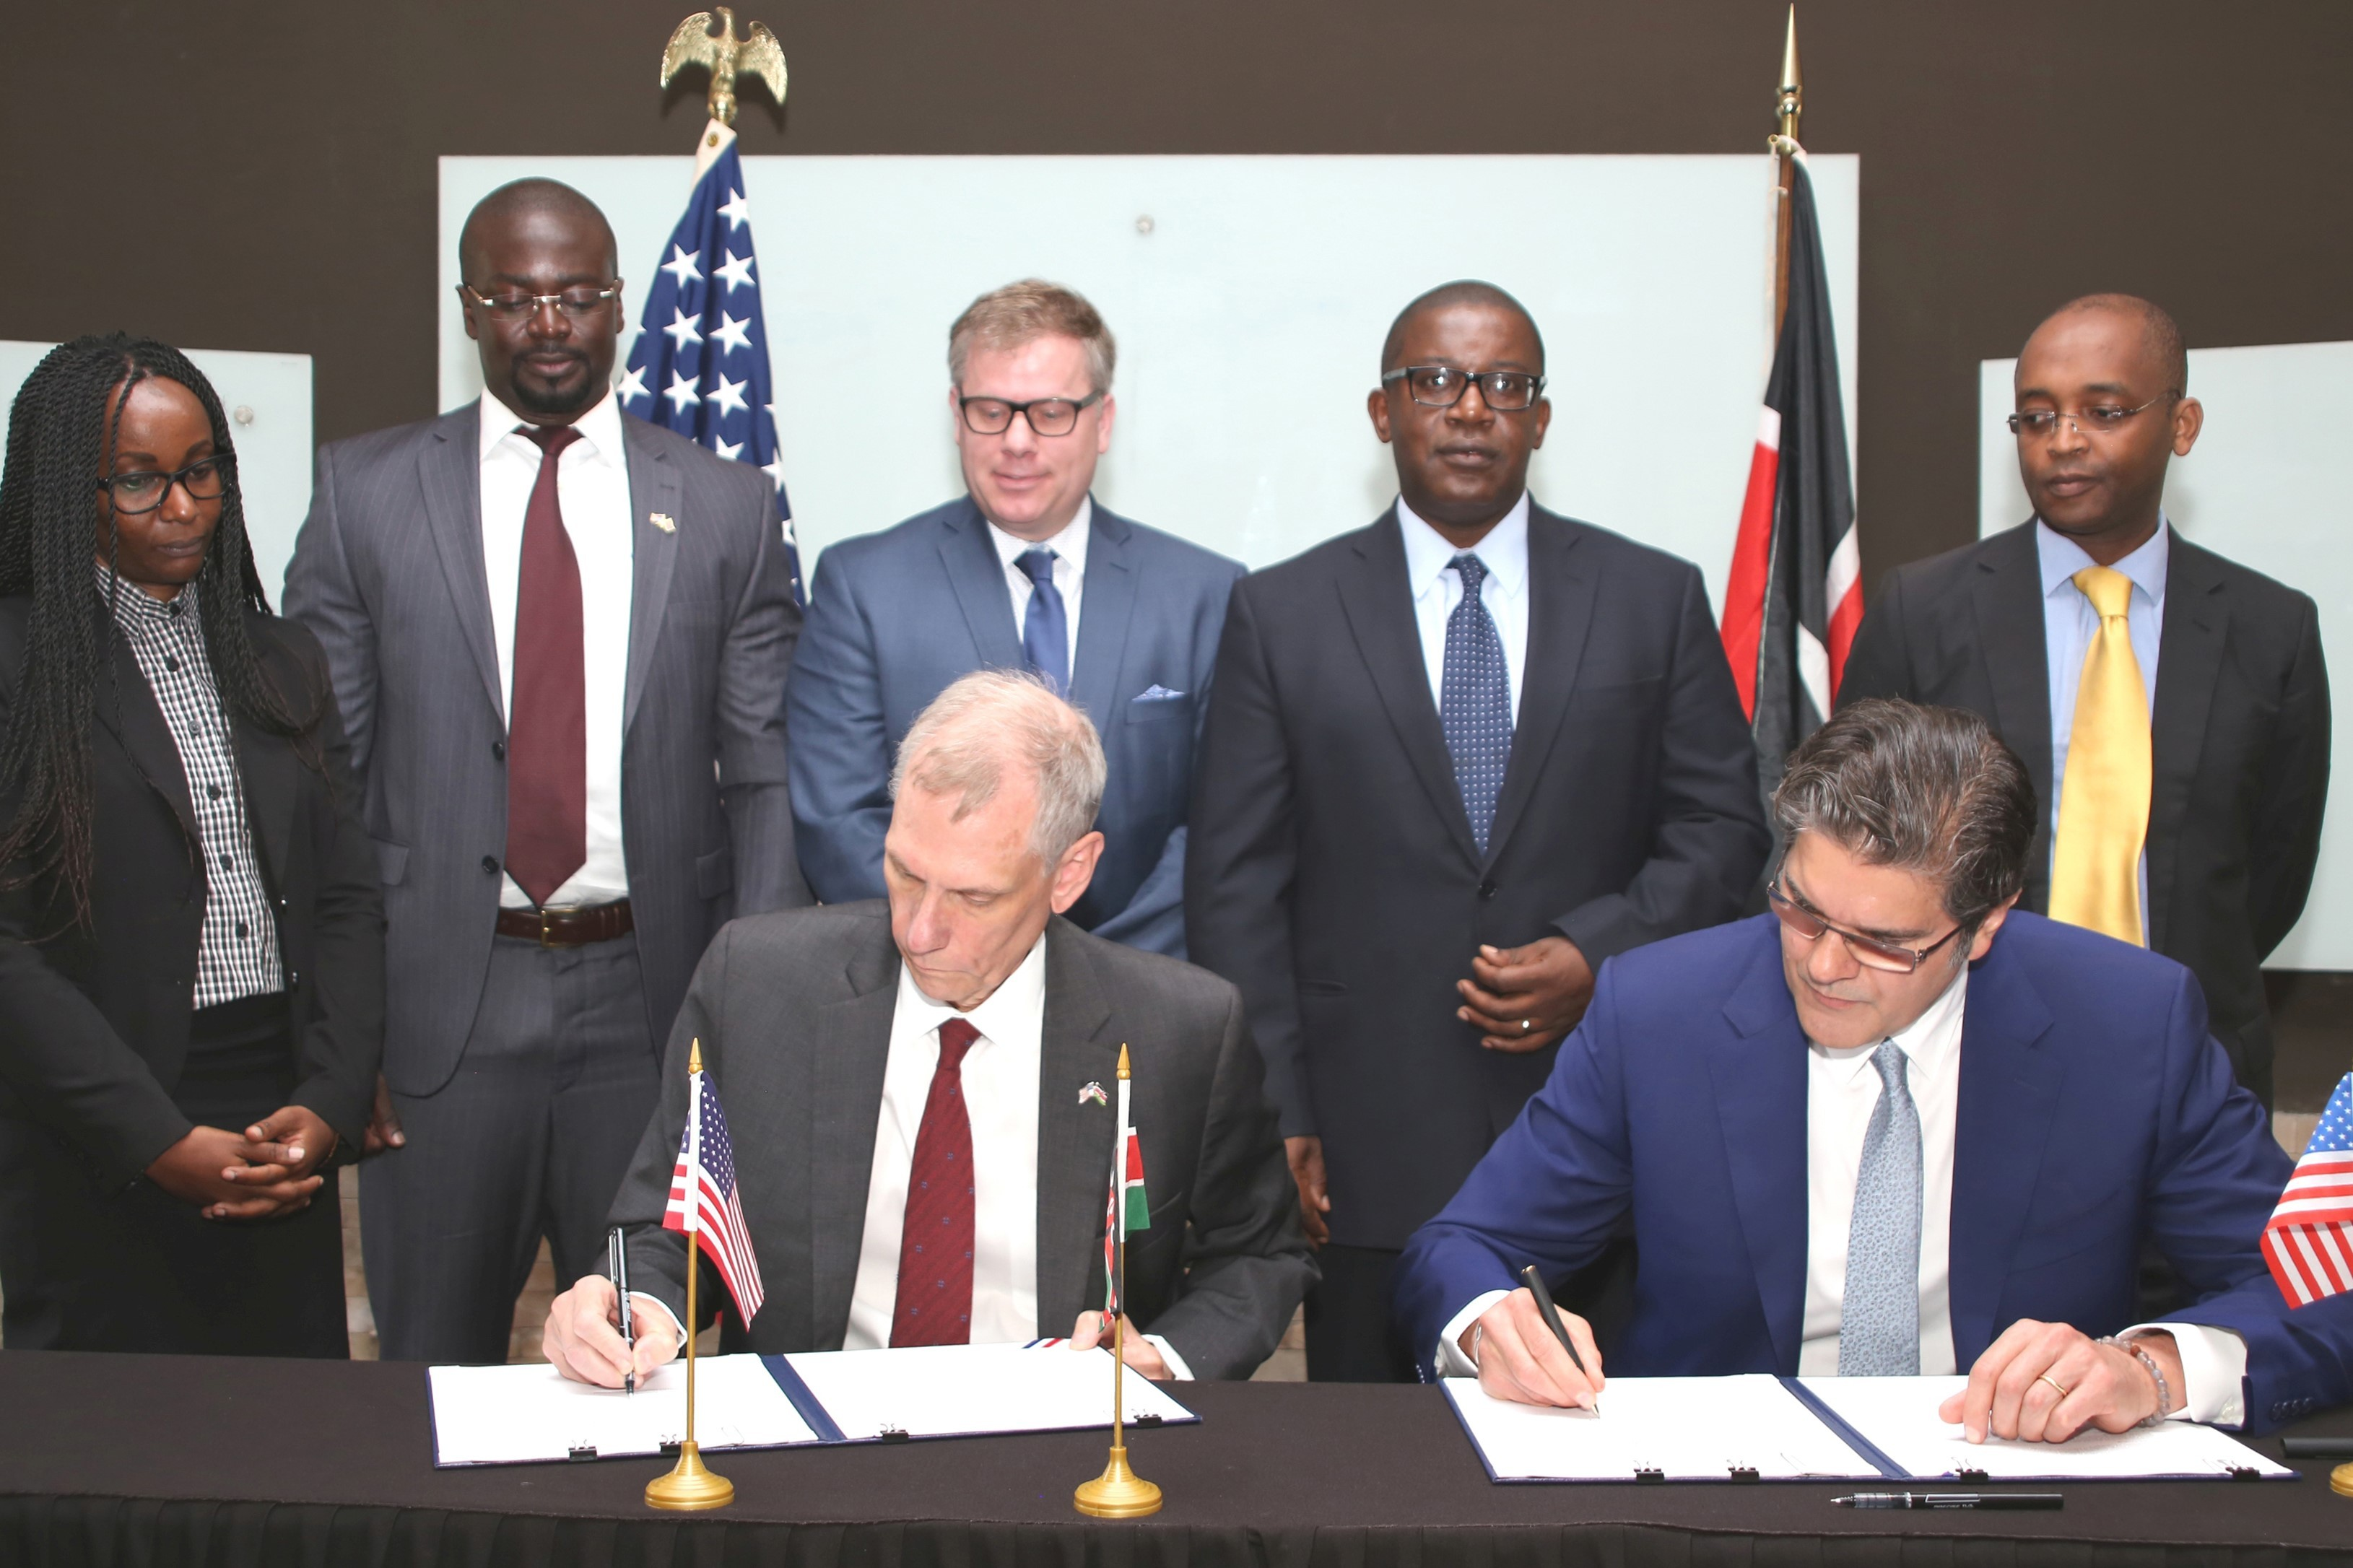 U.S. Ambassador to Kenya, Robert F. Godec, signs the grants on behalf of USTDA, along with Xago Africa Managing Director, Paul W. Webb. (Photo: Business Wire)